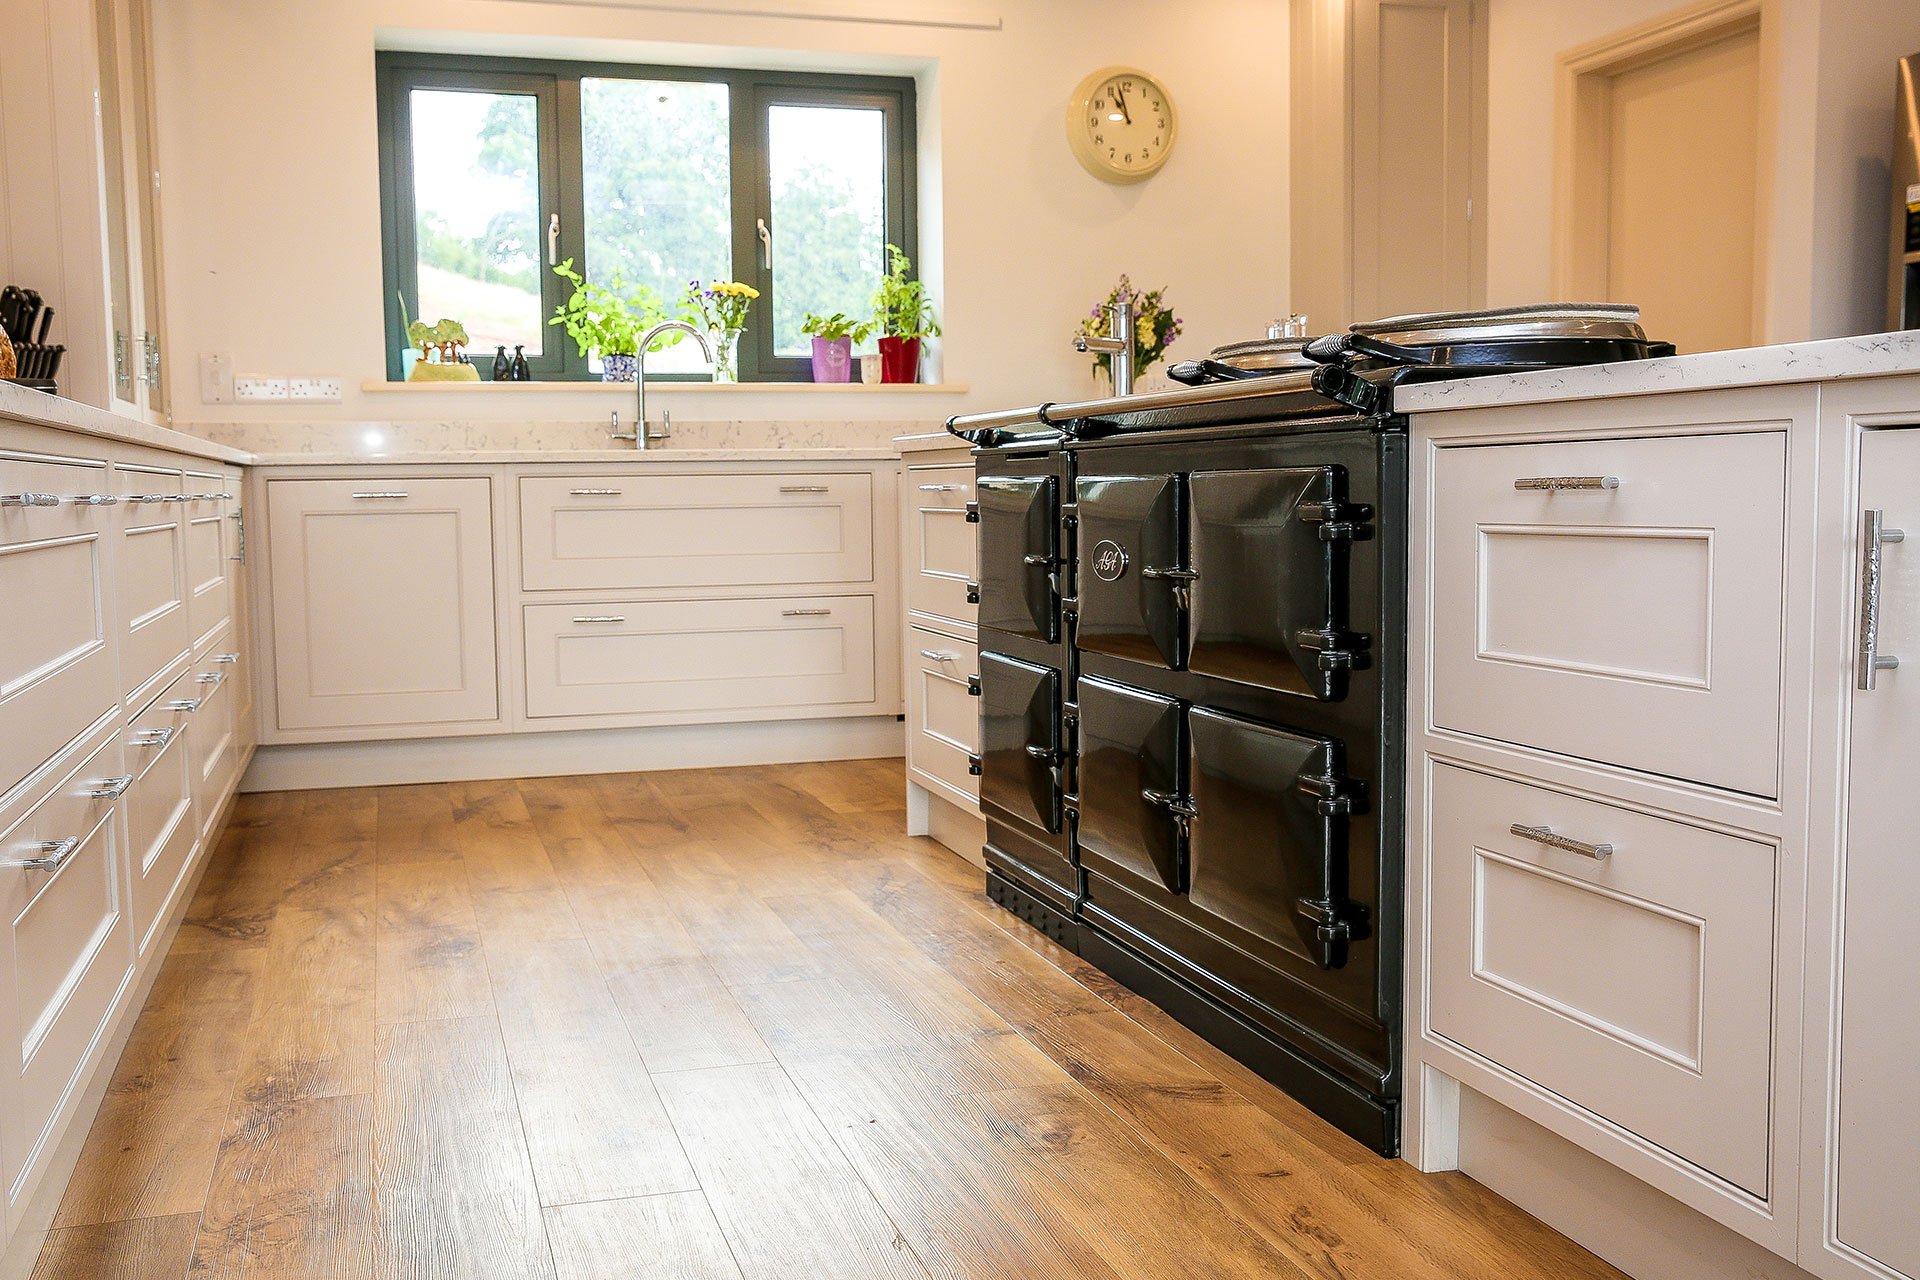 aga-total-control-5-oven-cooker